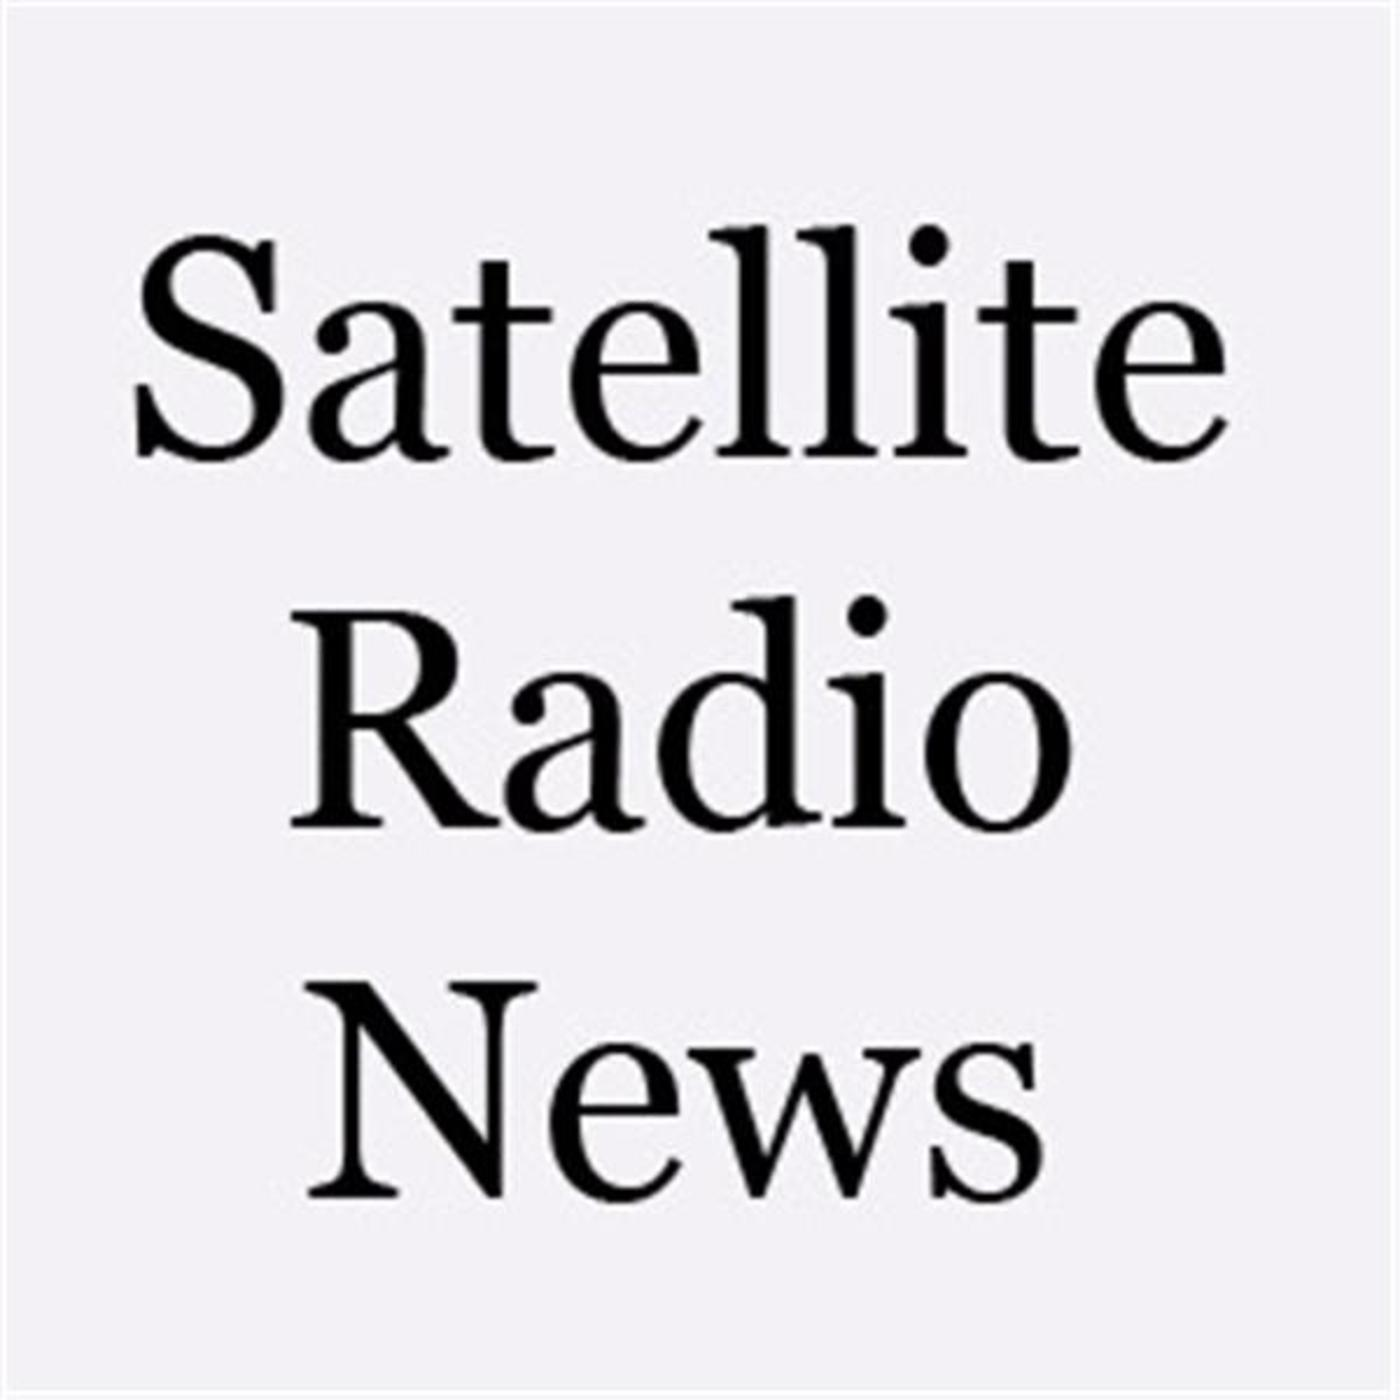 Satellite Radio News